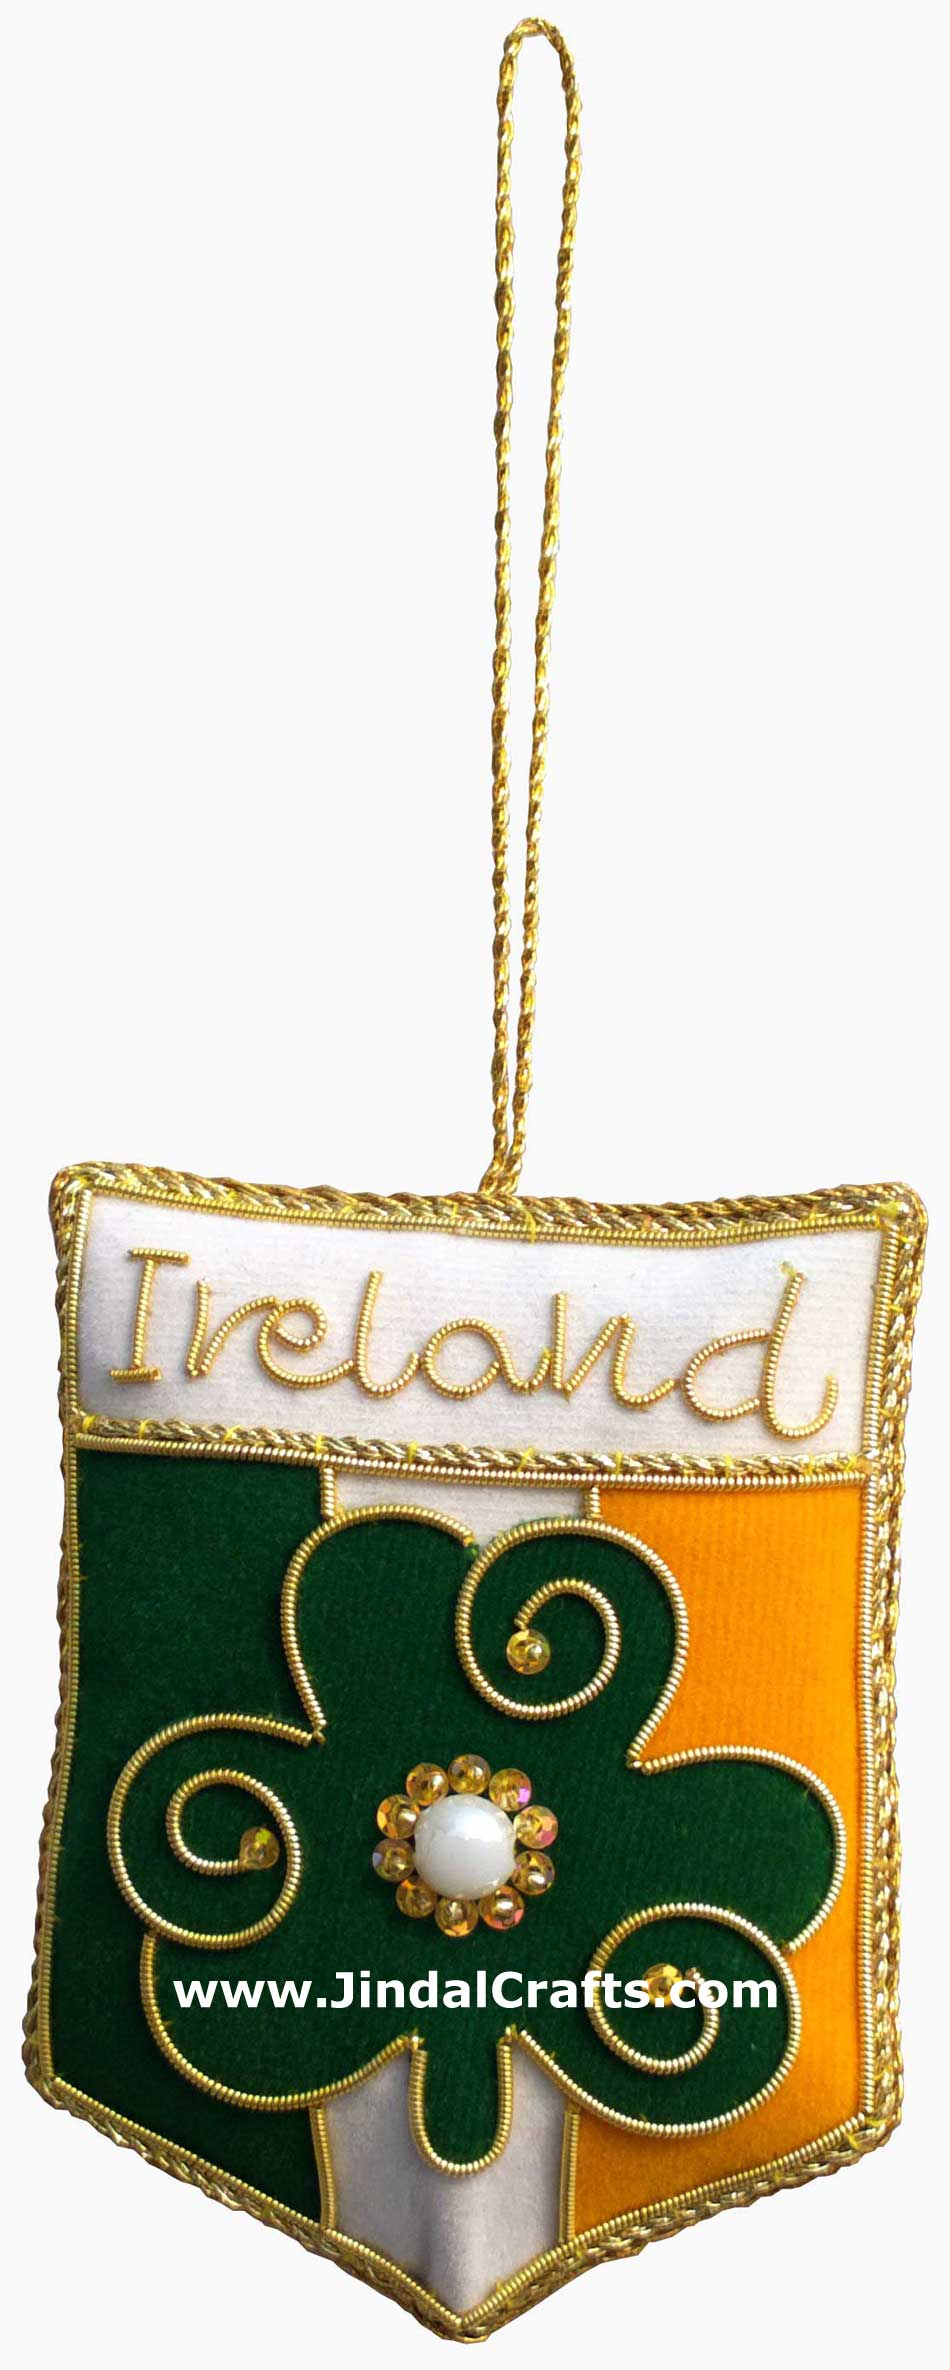 Irish Themed Hand Made Embroidered Christmas Ornaments Xmas Holiday Decorations